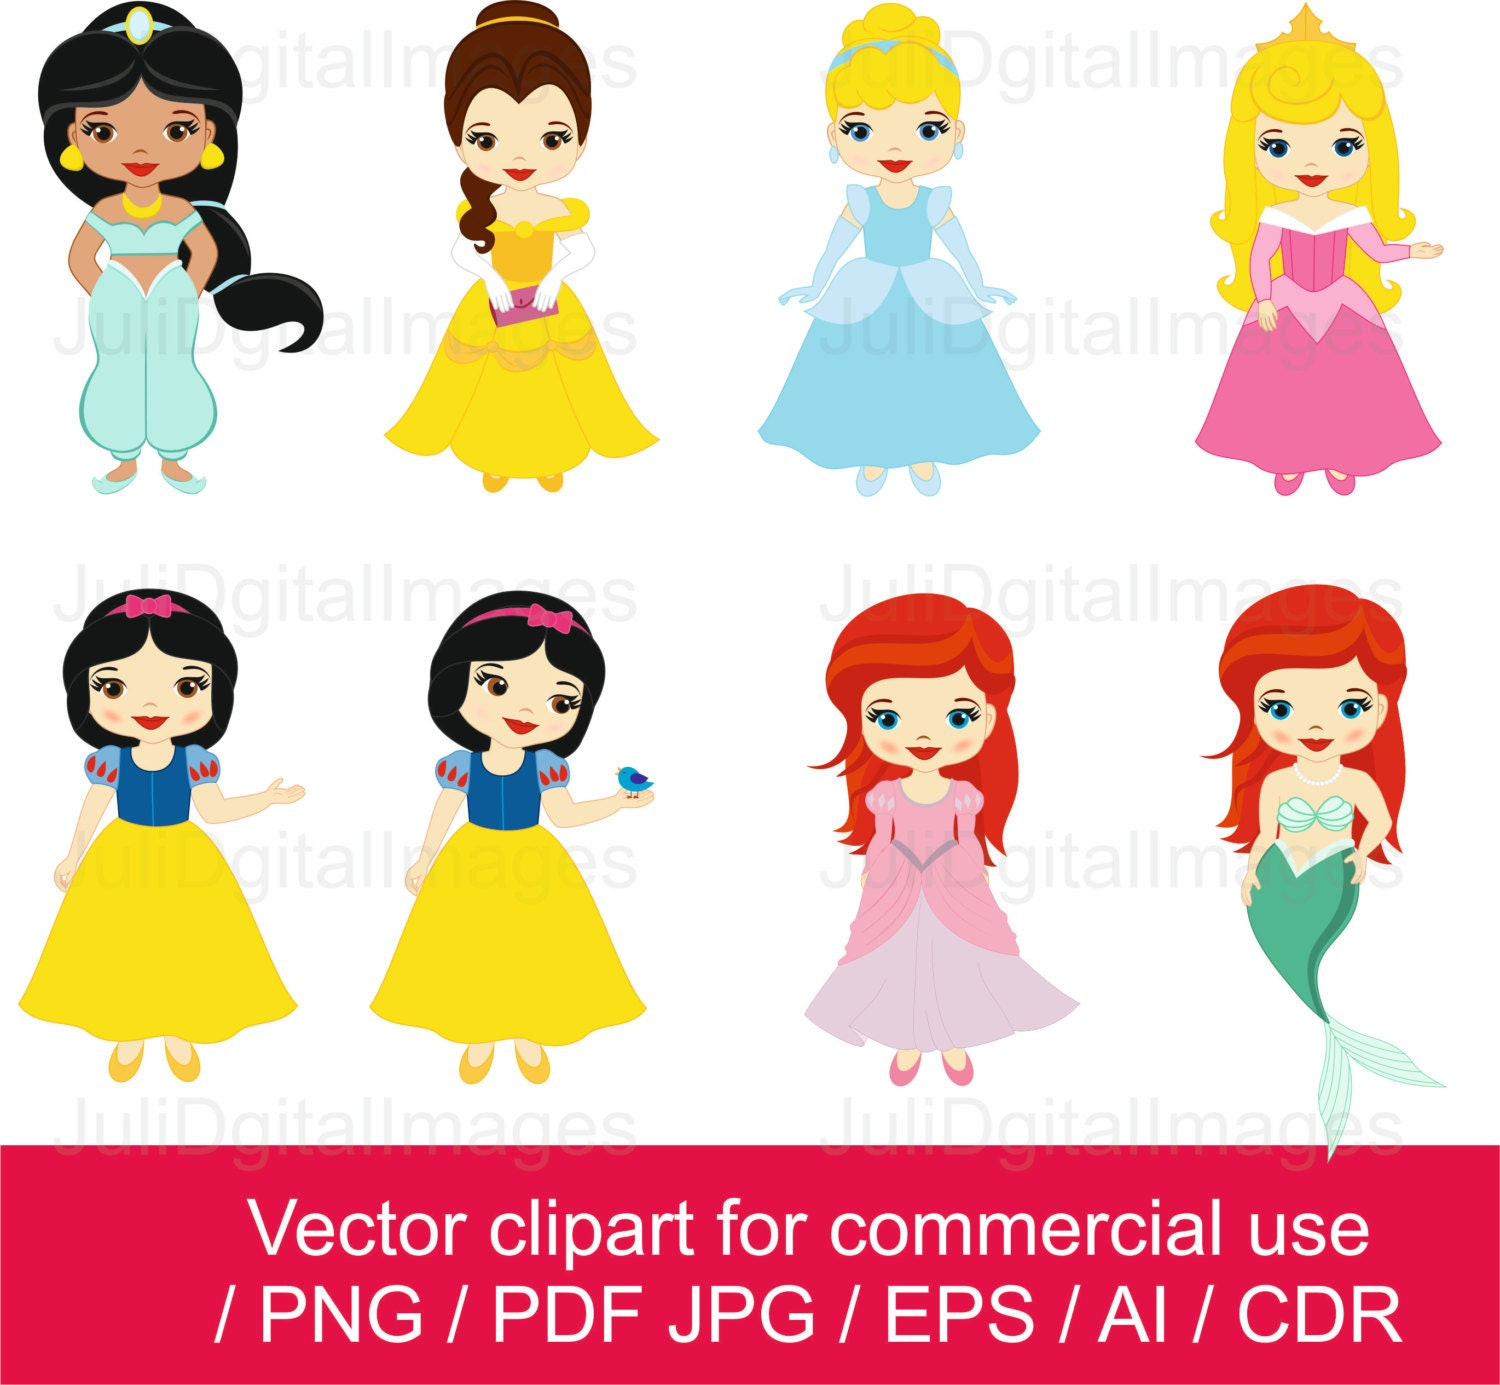 Princesses clipart little princess clipart princess vector - Petite princesse disney ...